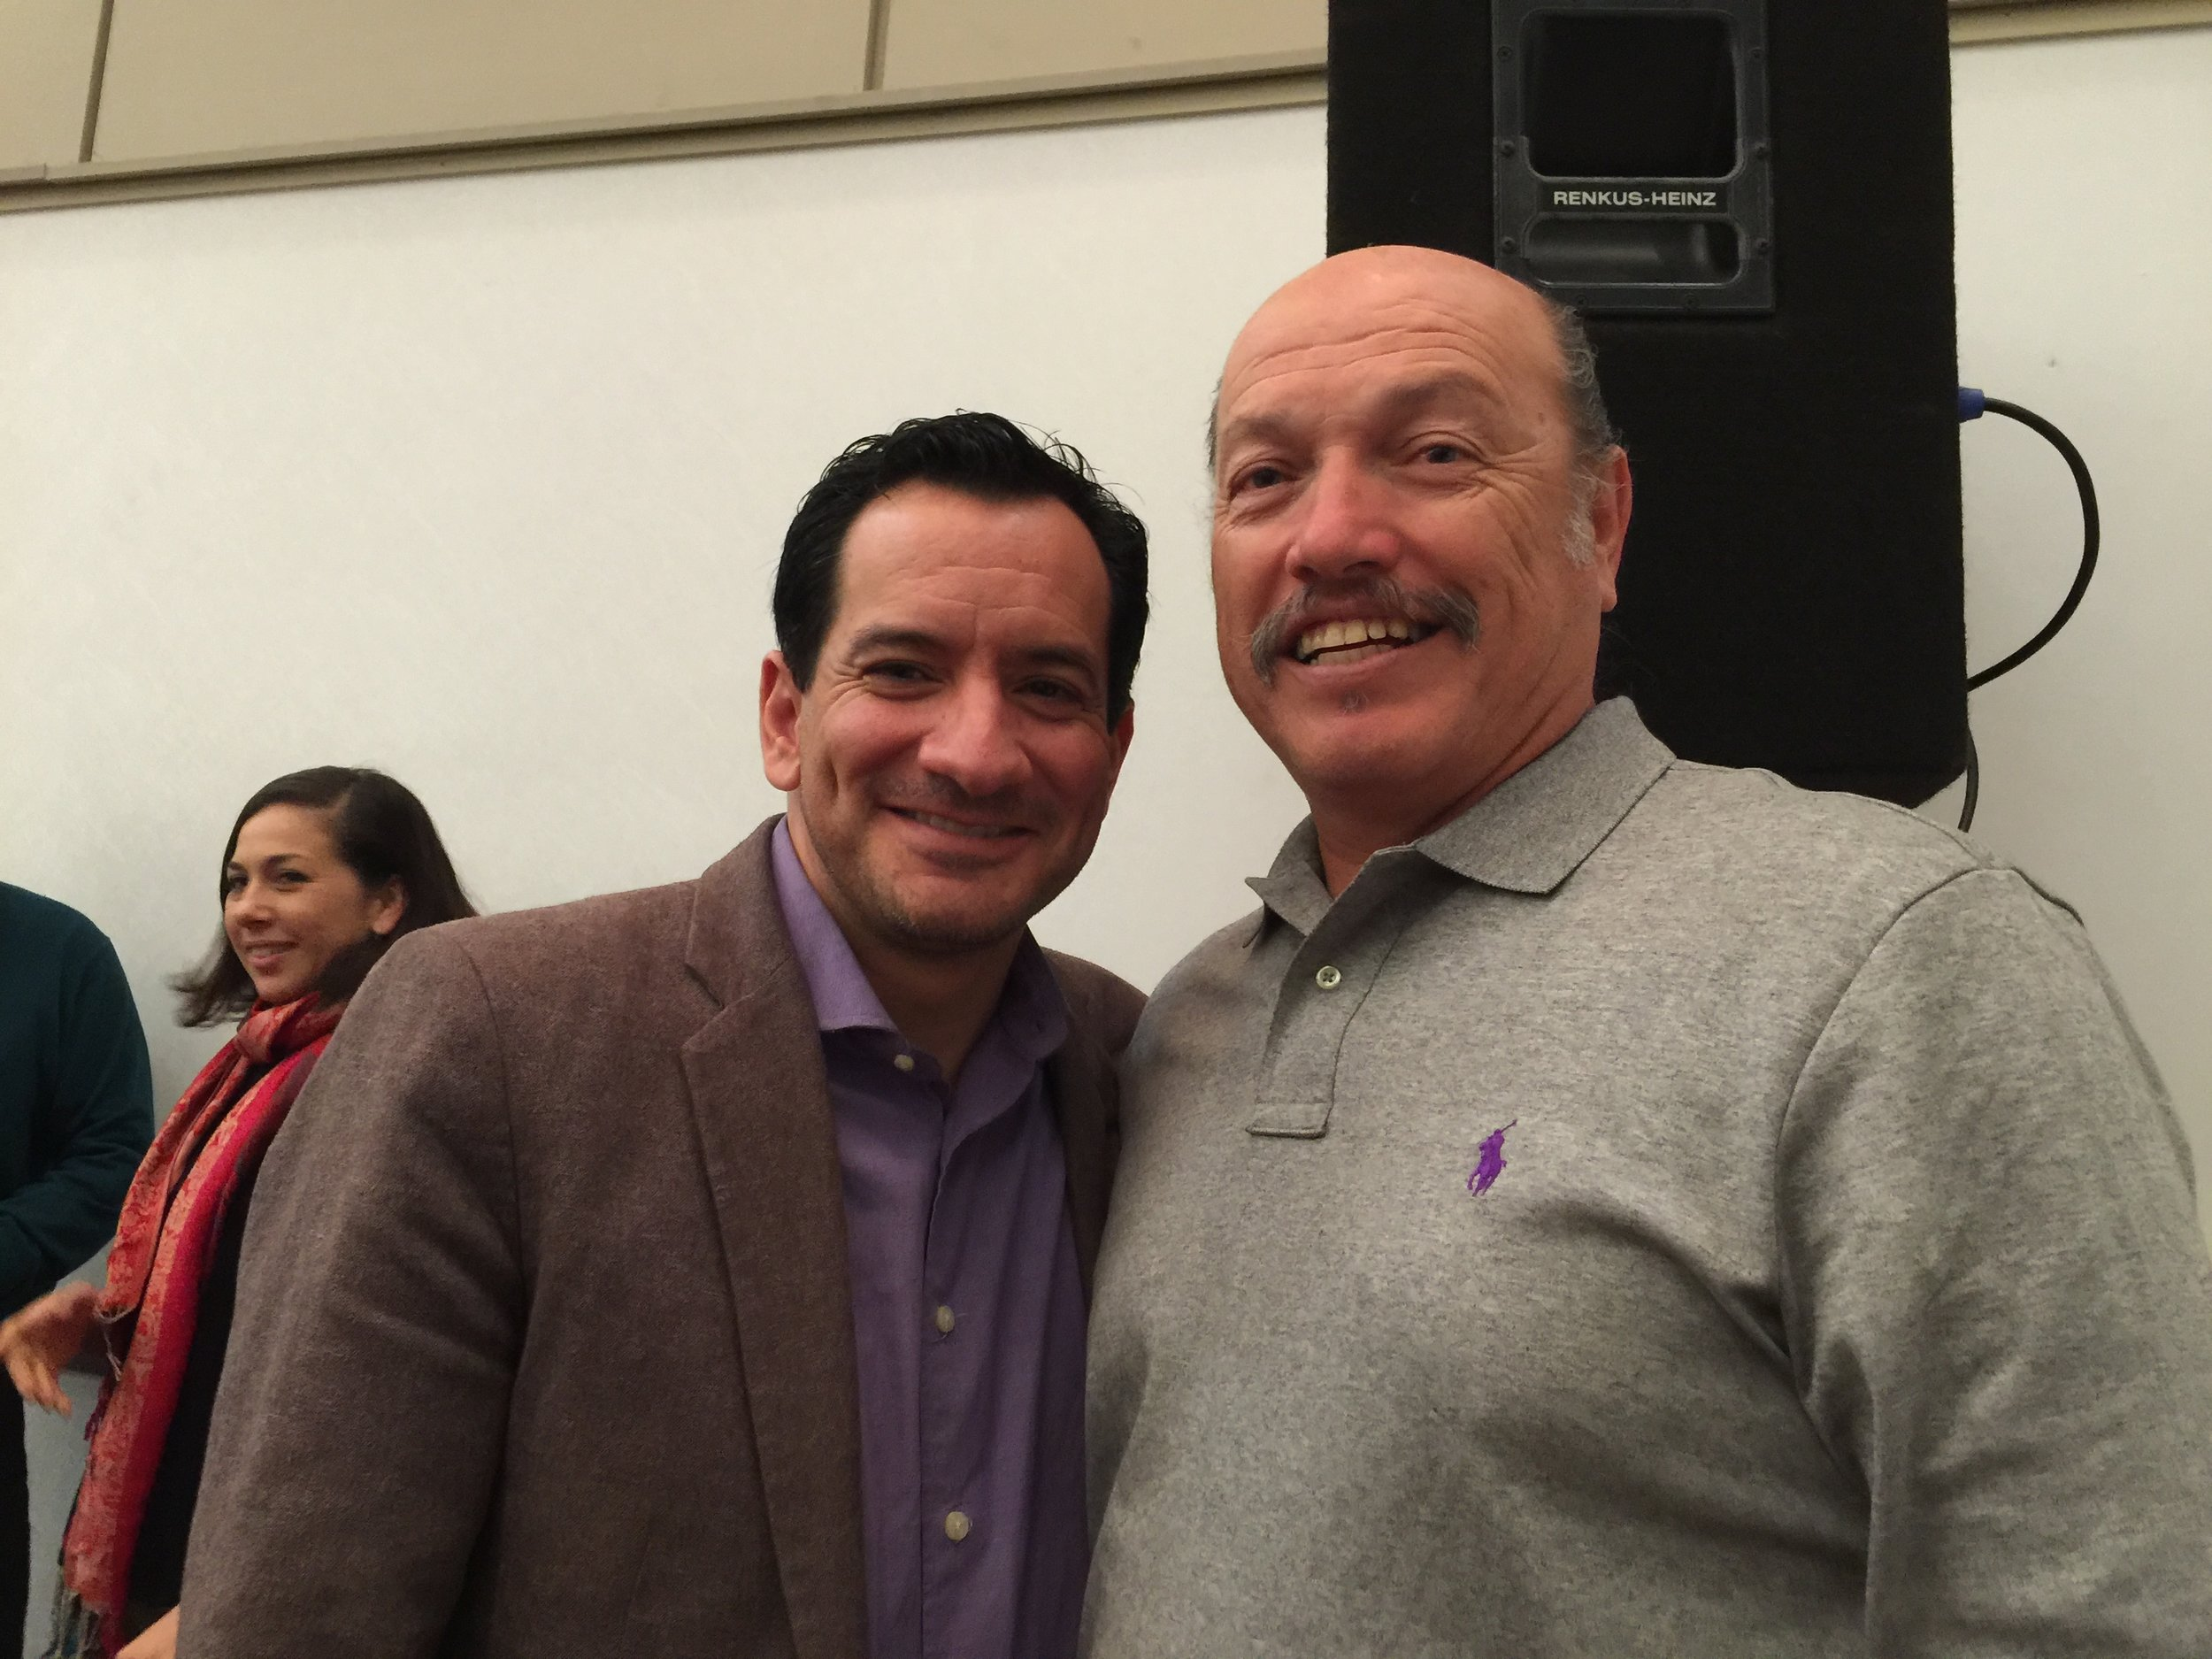 Tony with Speaker of the Assembly Anthony Rendon